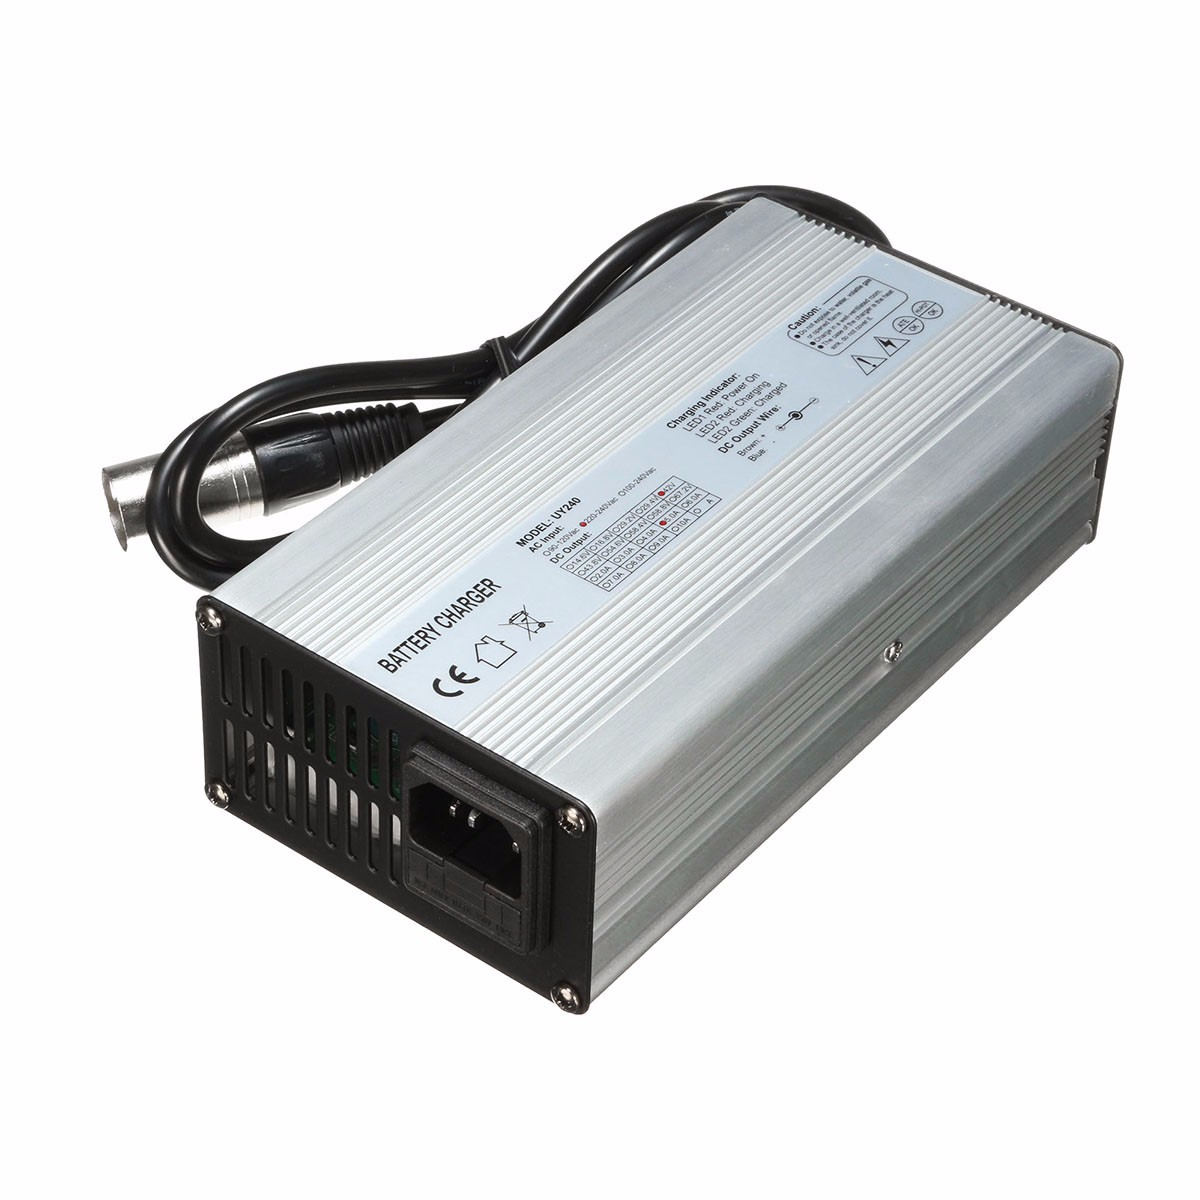 36V 37V 42V 45V 5A Battery Charger For 10s 10x 3.6V/3.7